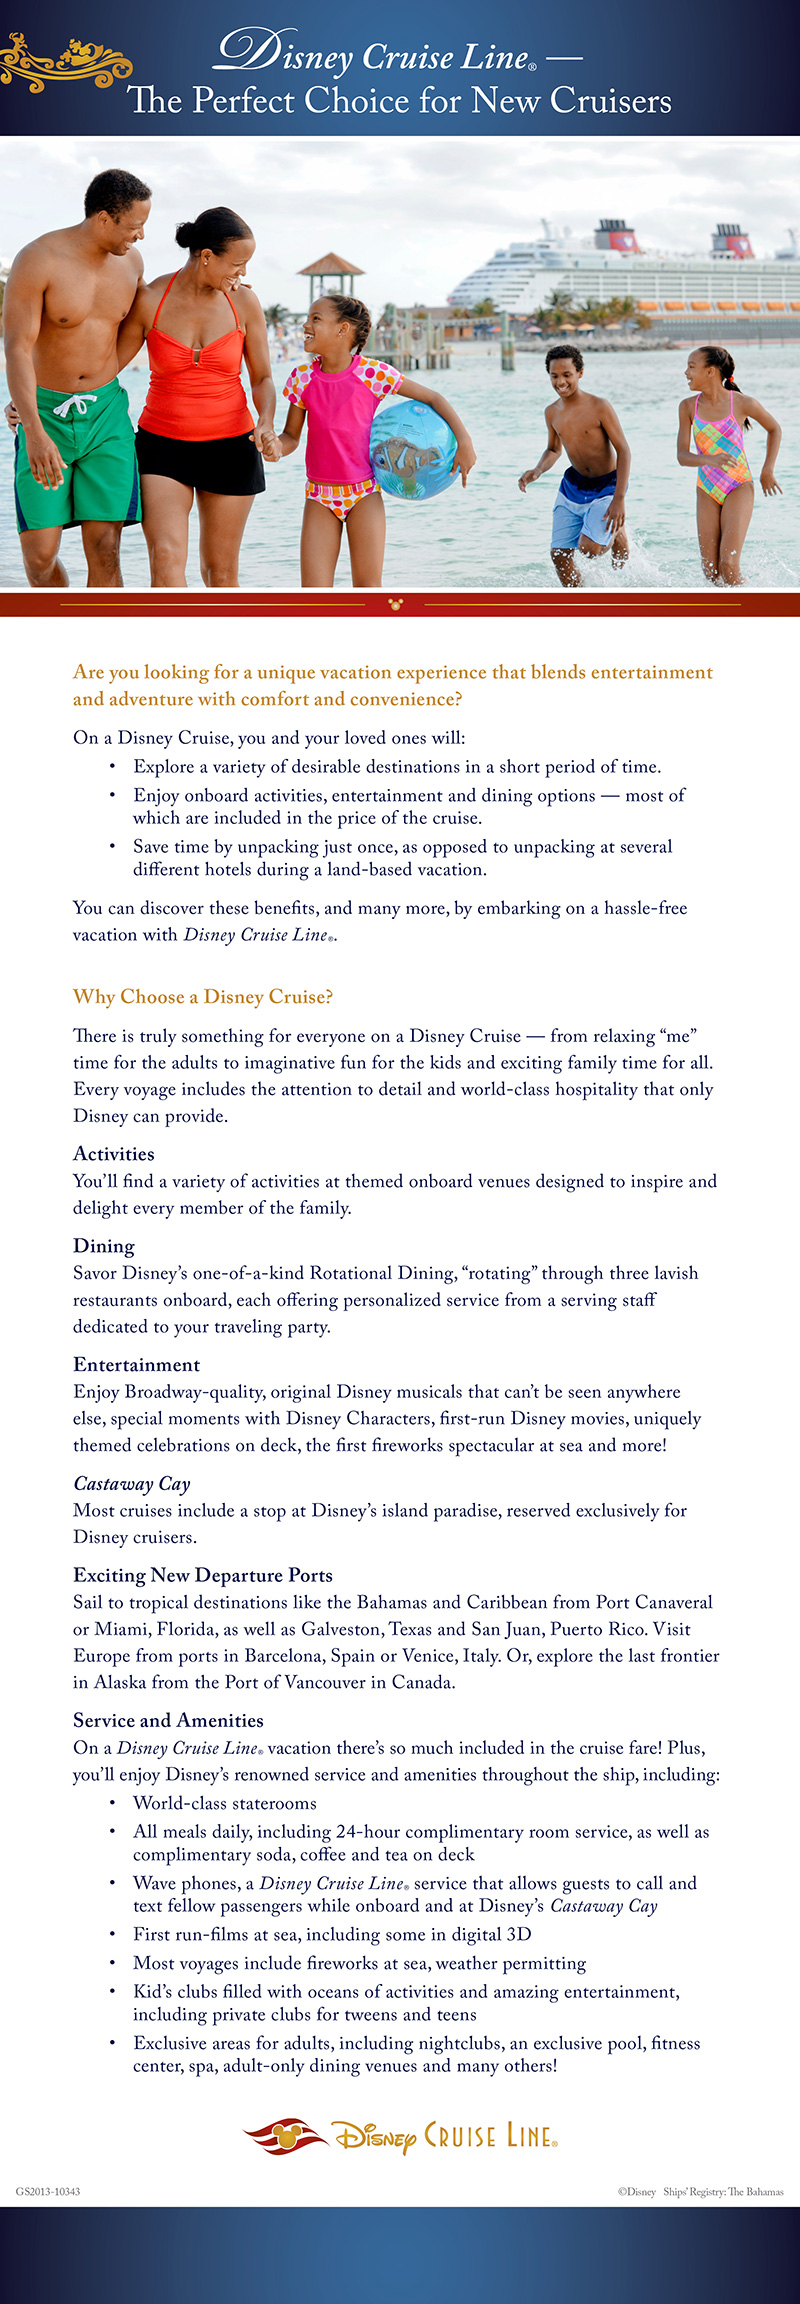 DCL-New-Cruisers-Webpage